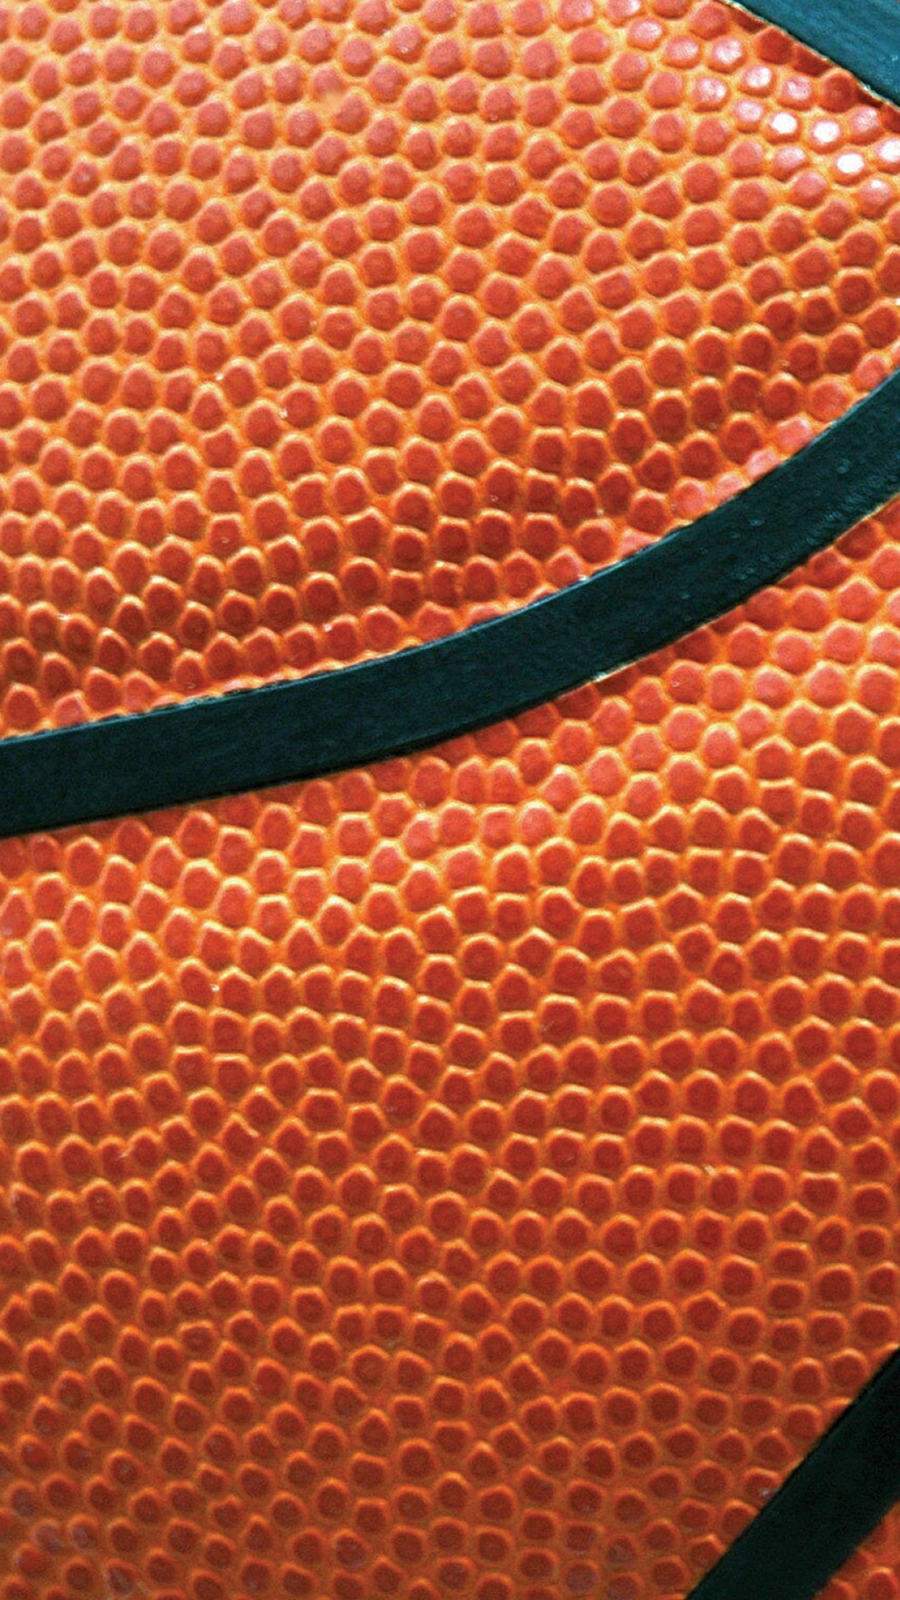 Basketball Wallpapers Free Download